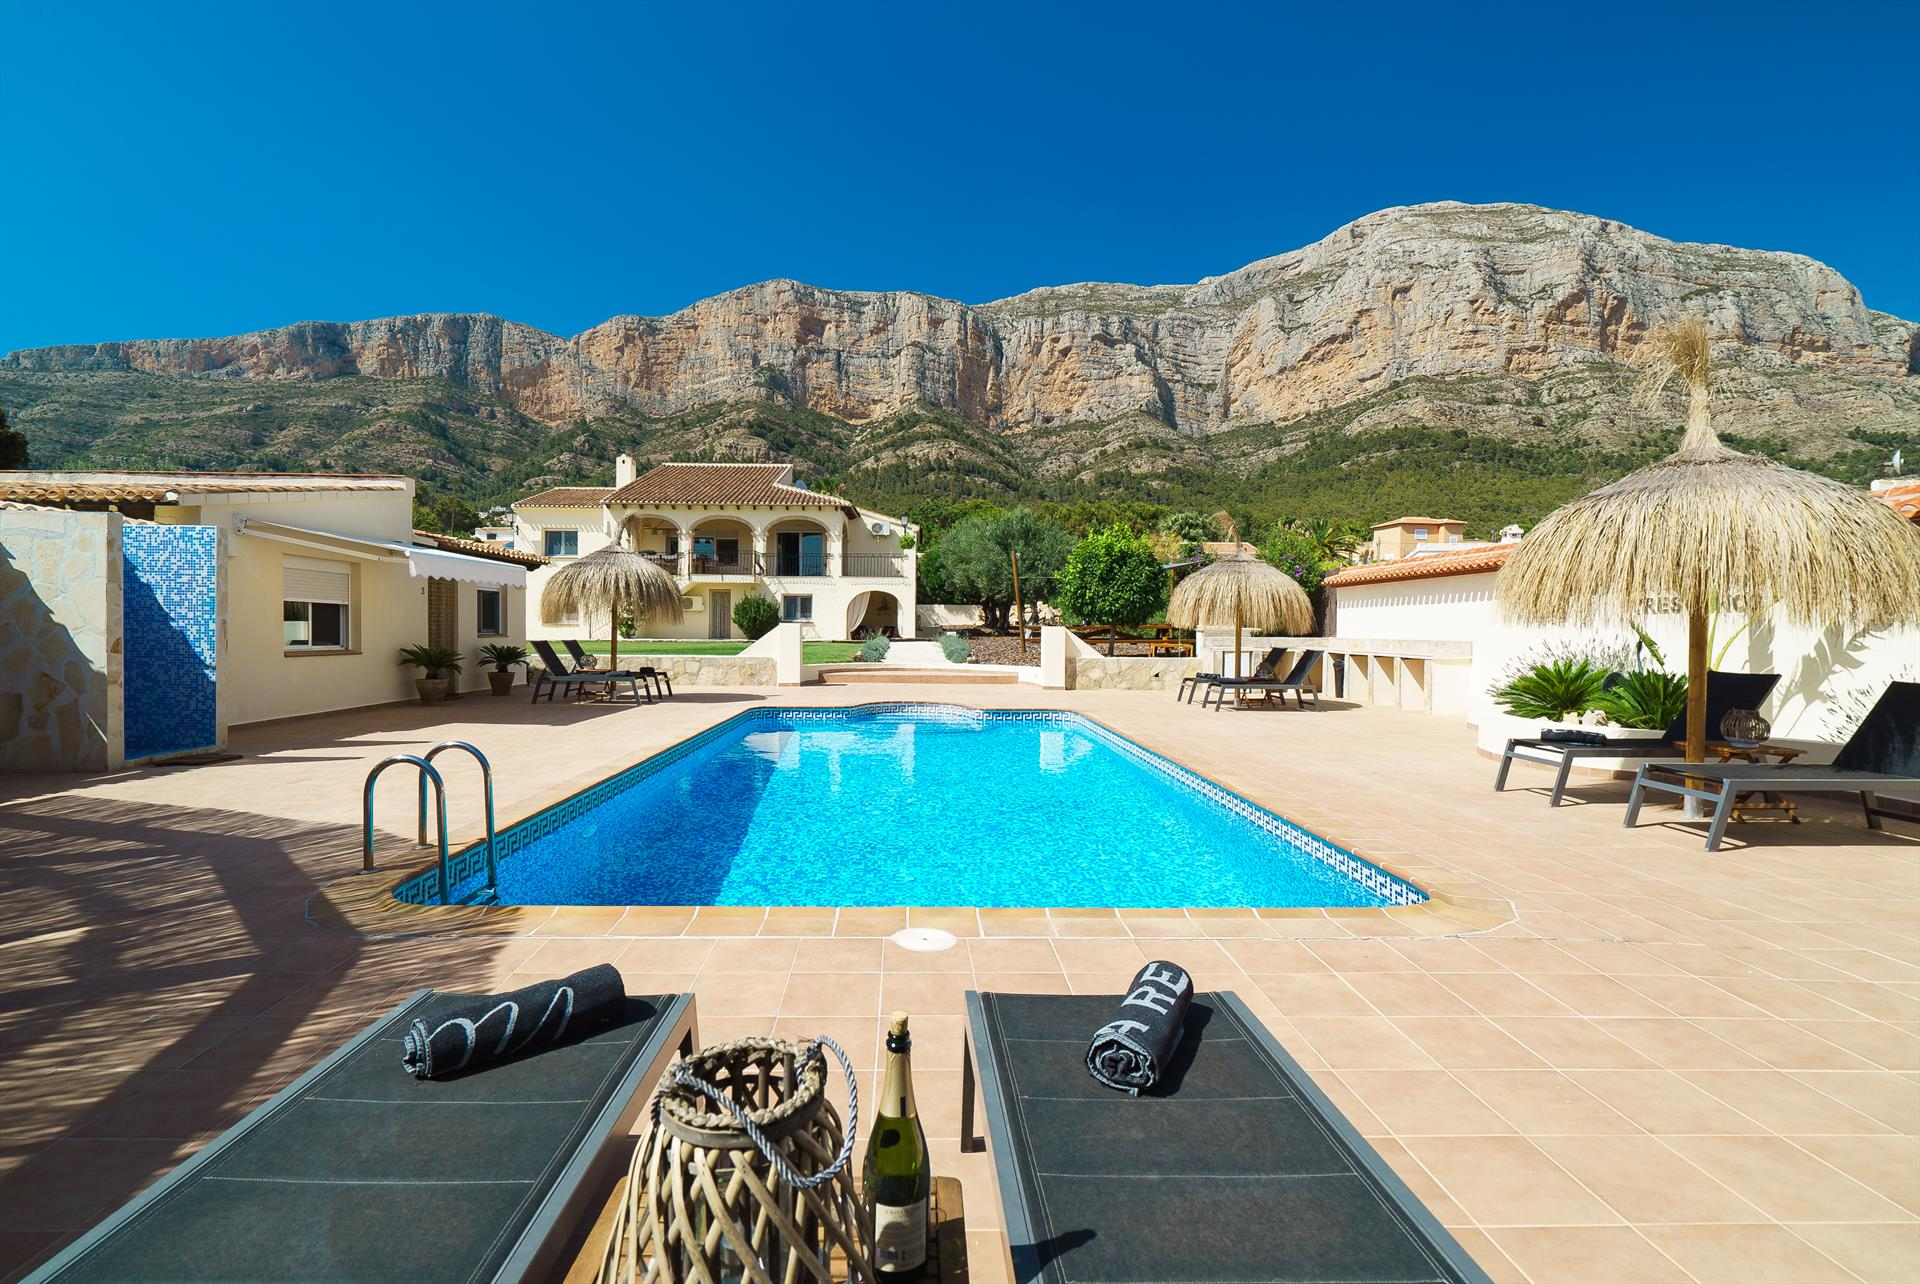 Tres Ninos 10 pax, Wonderful and comfortable villa  with private pool in Javea, on the Costa Blanca, Spain for 10 persons.....